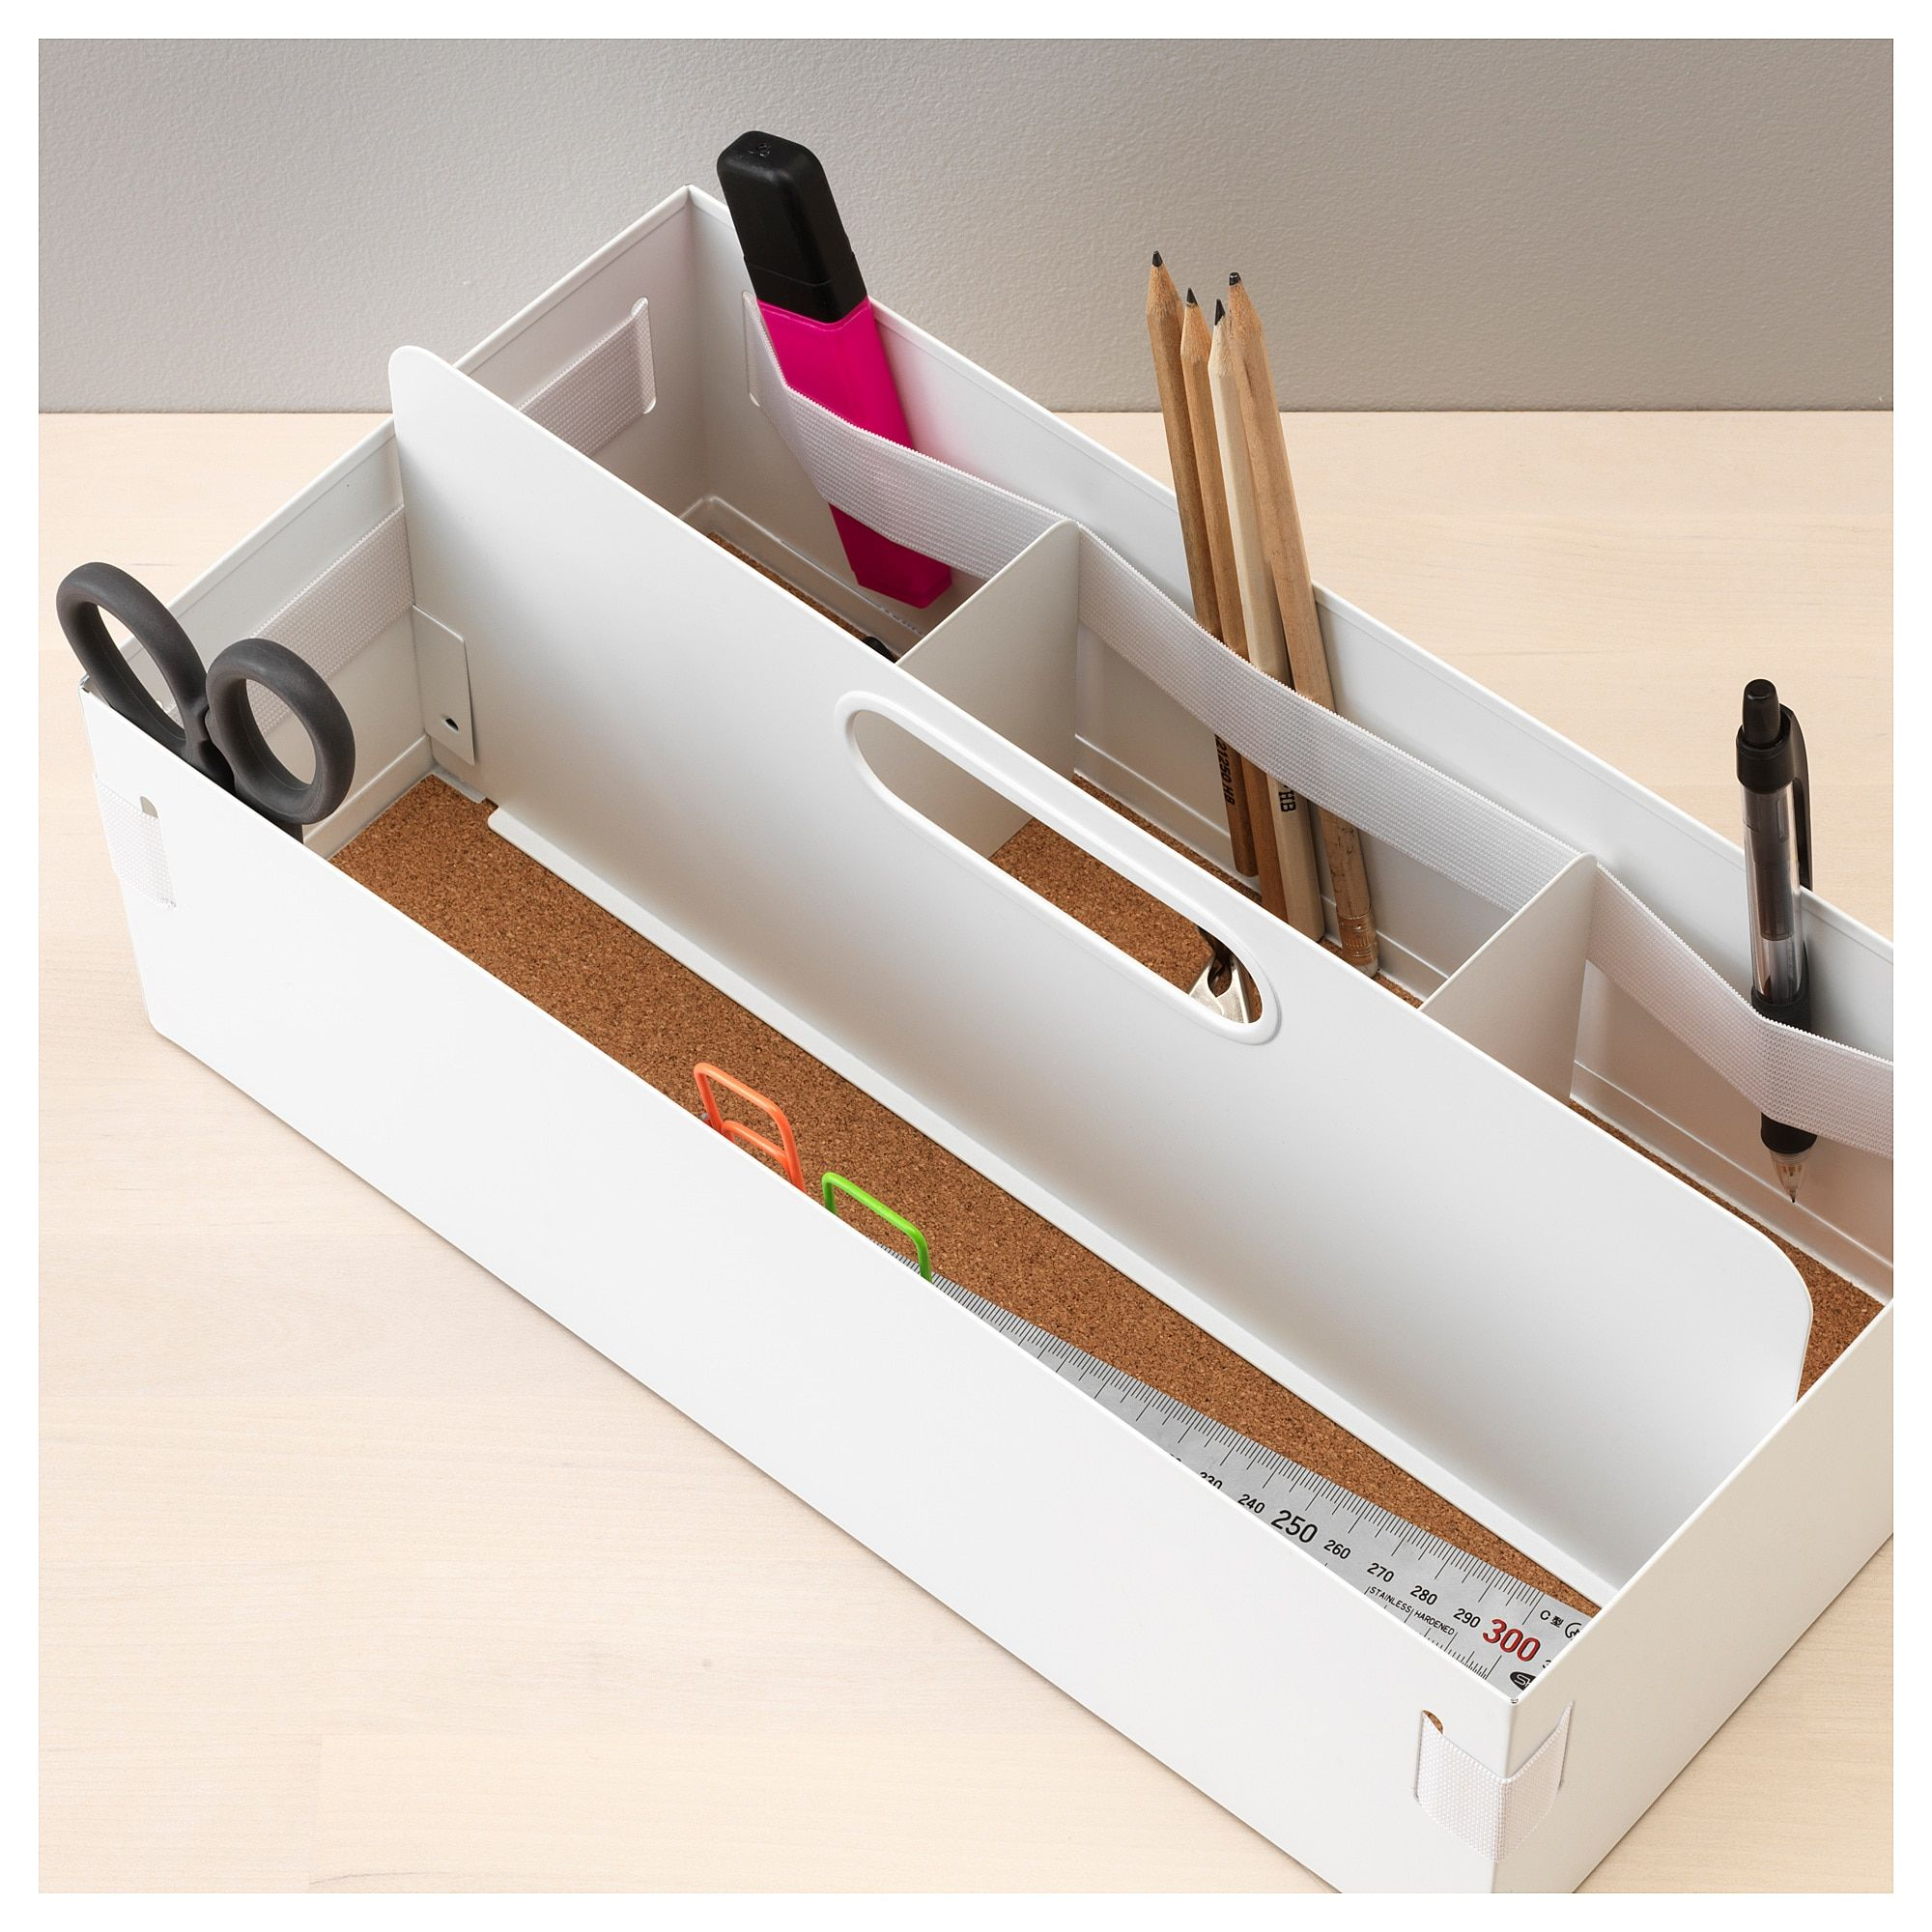 Kvissle Desk Organizer 7x14 X5 Ikea Desk Organization Ikea Desk Organization Stationery Organization